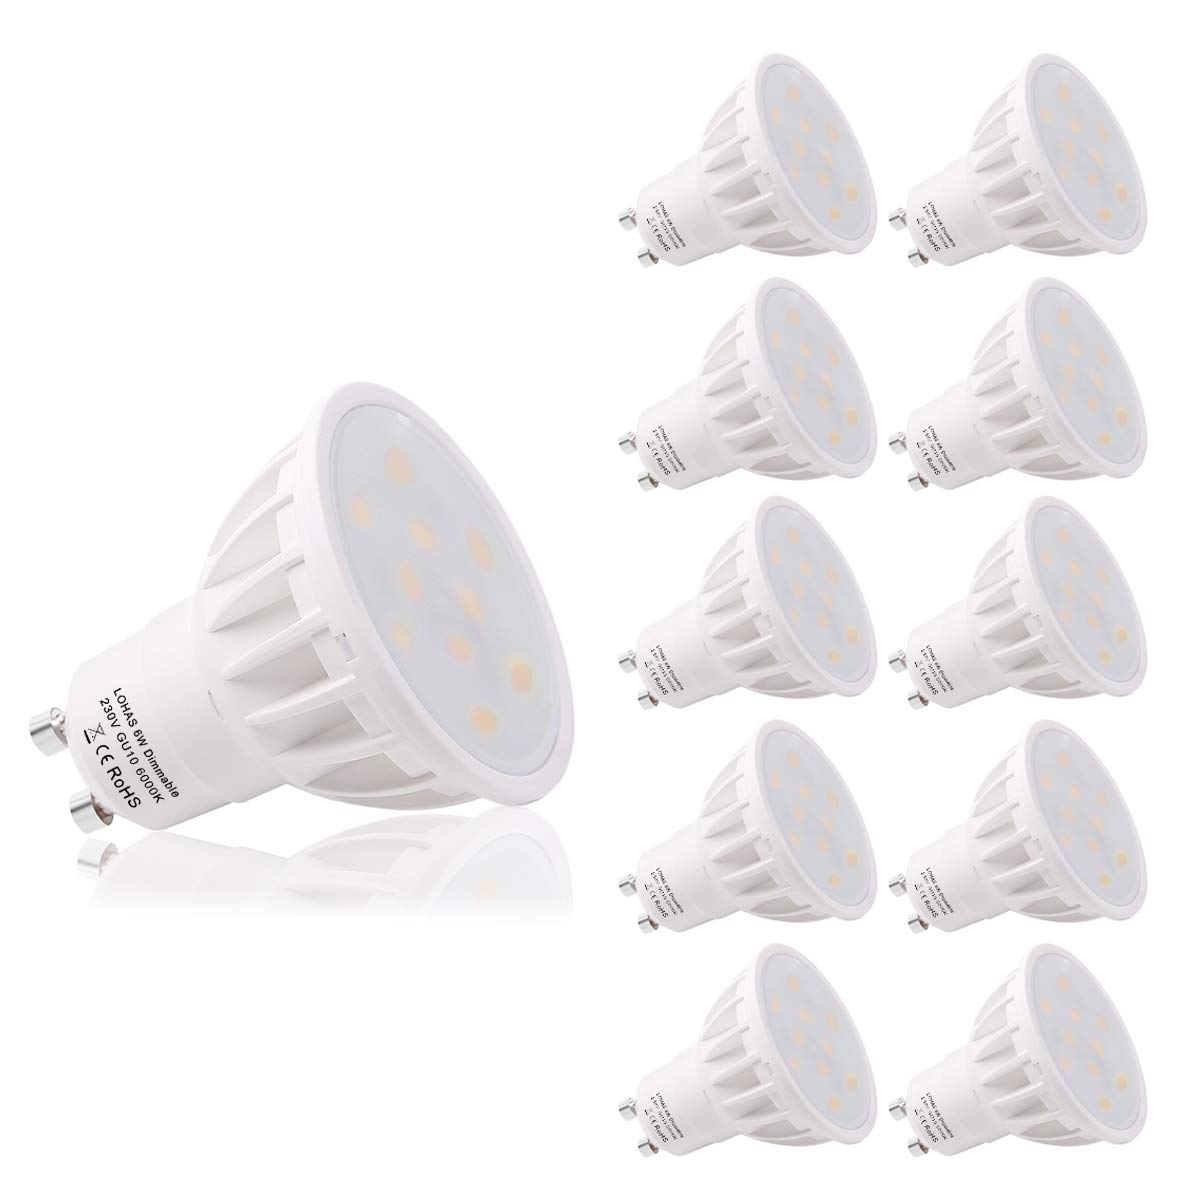 LOHAS Dimmable GU10 LED Bulbs, 6000K Day White, 6W Replacement for 50W